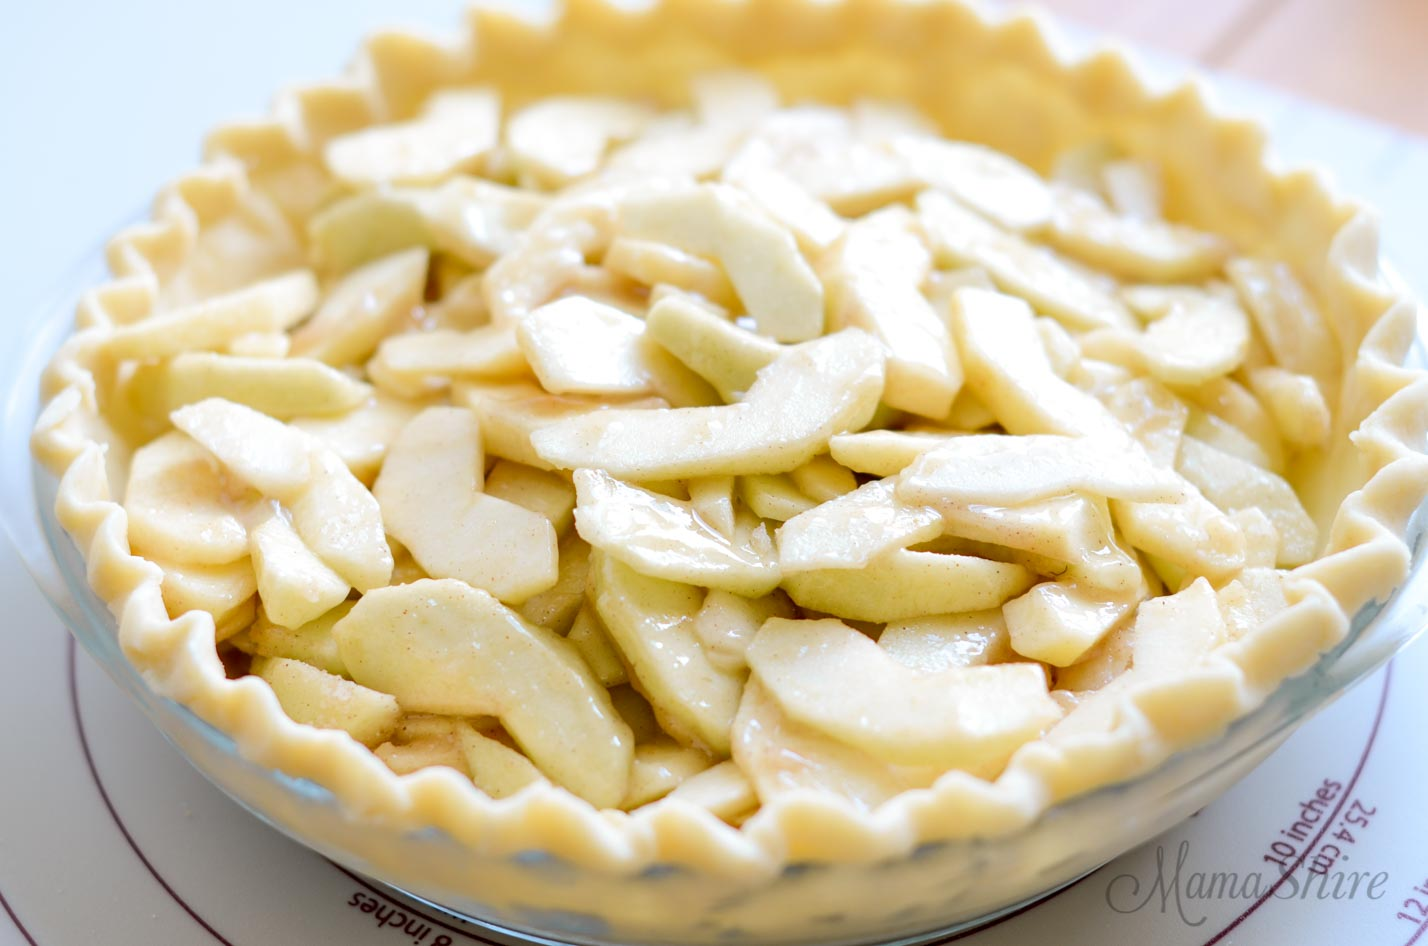 A uncooked pie crust in a pie pan with a sliced apple filing.